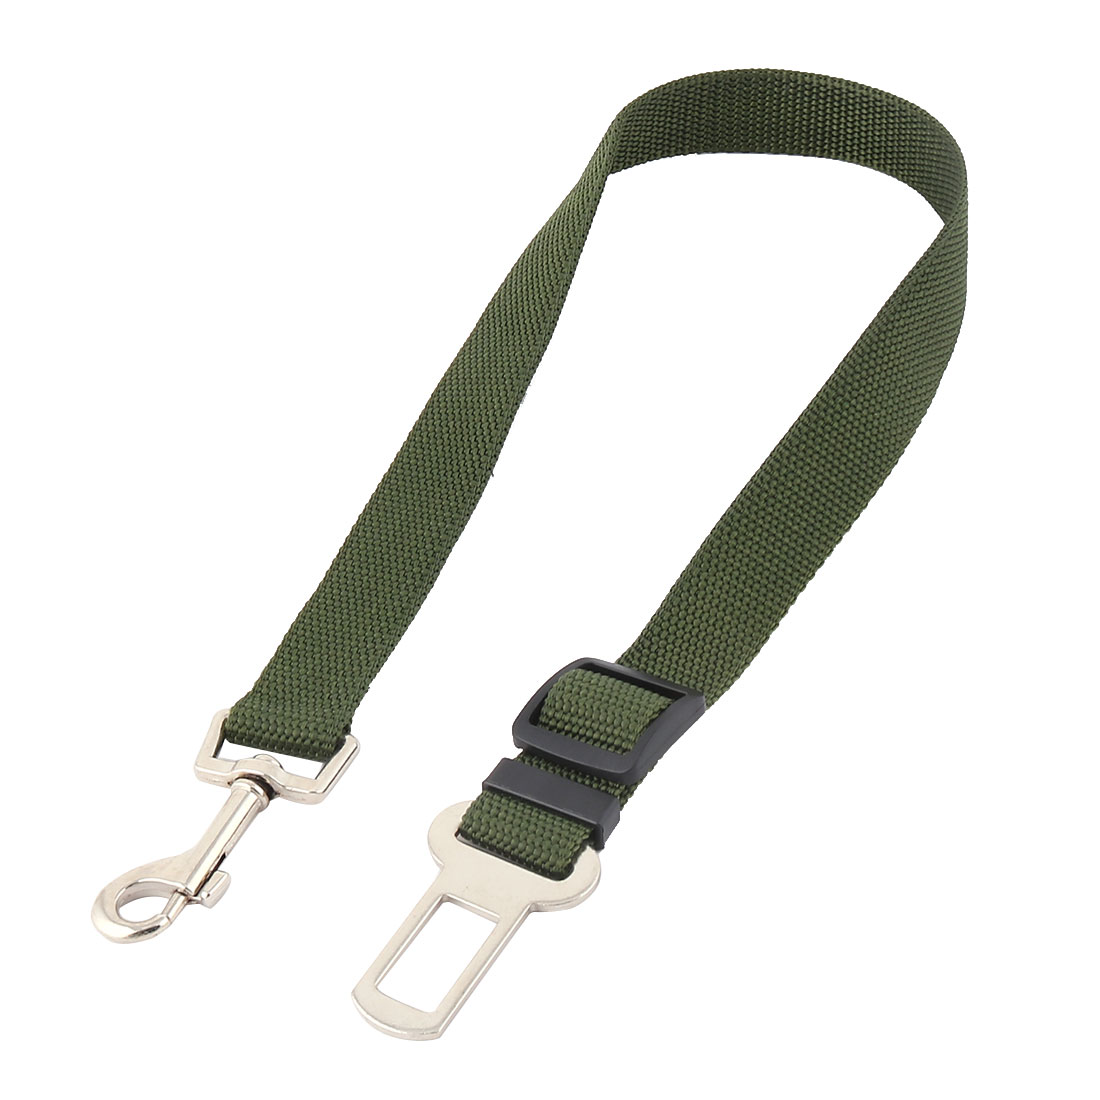 Pet Cat Dog Safety Car Vehicle Seatbelt Adjustable Harness Leash Army Green